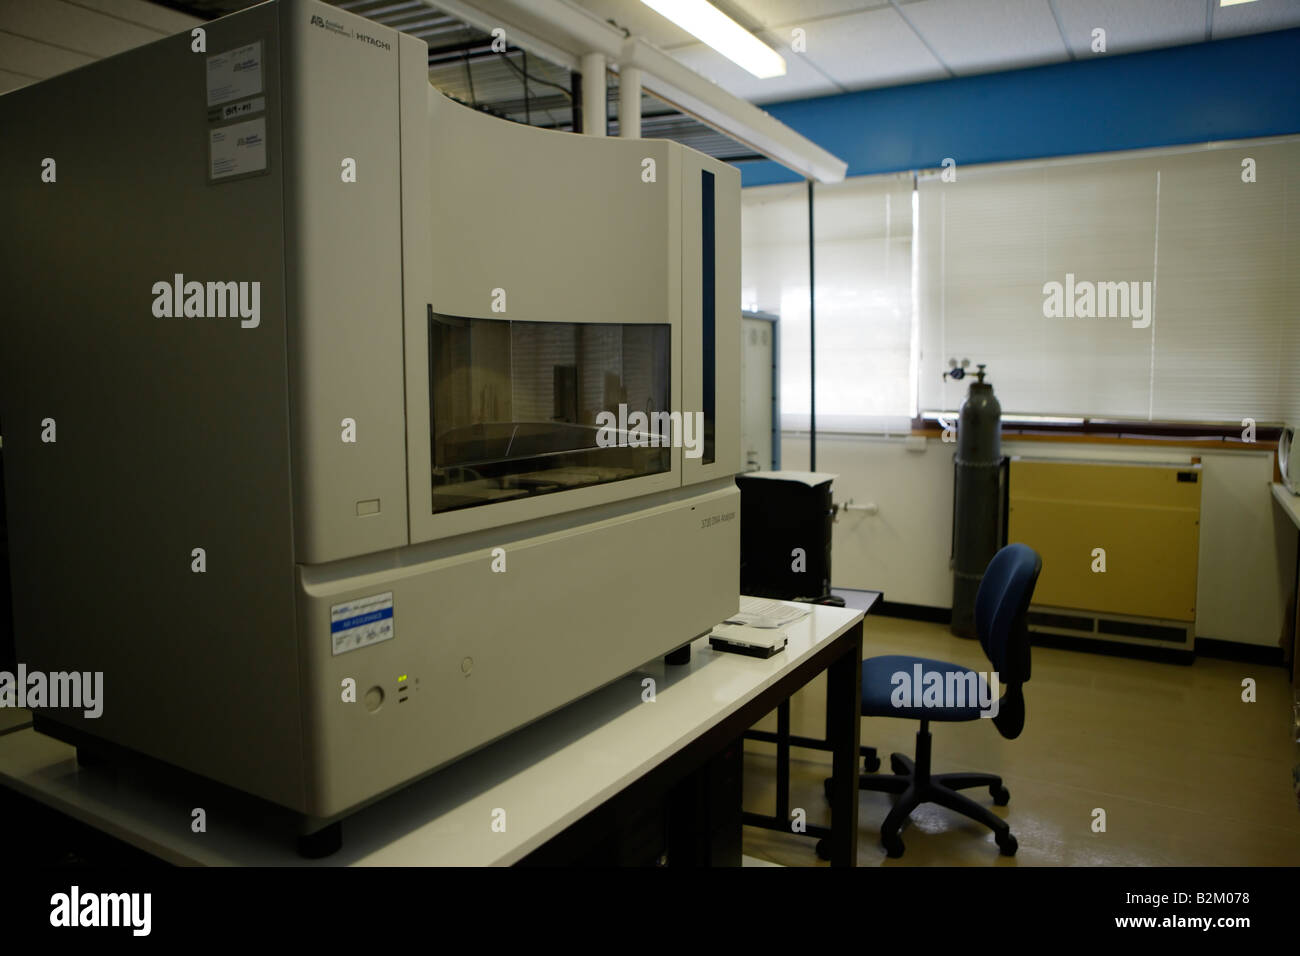 Machine for automatically analysing base sequences in lengths of DNA for research purposes - Stock Image